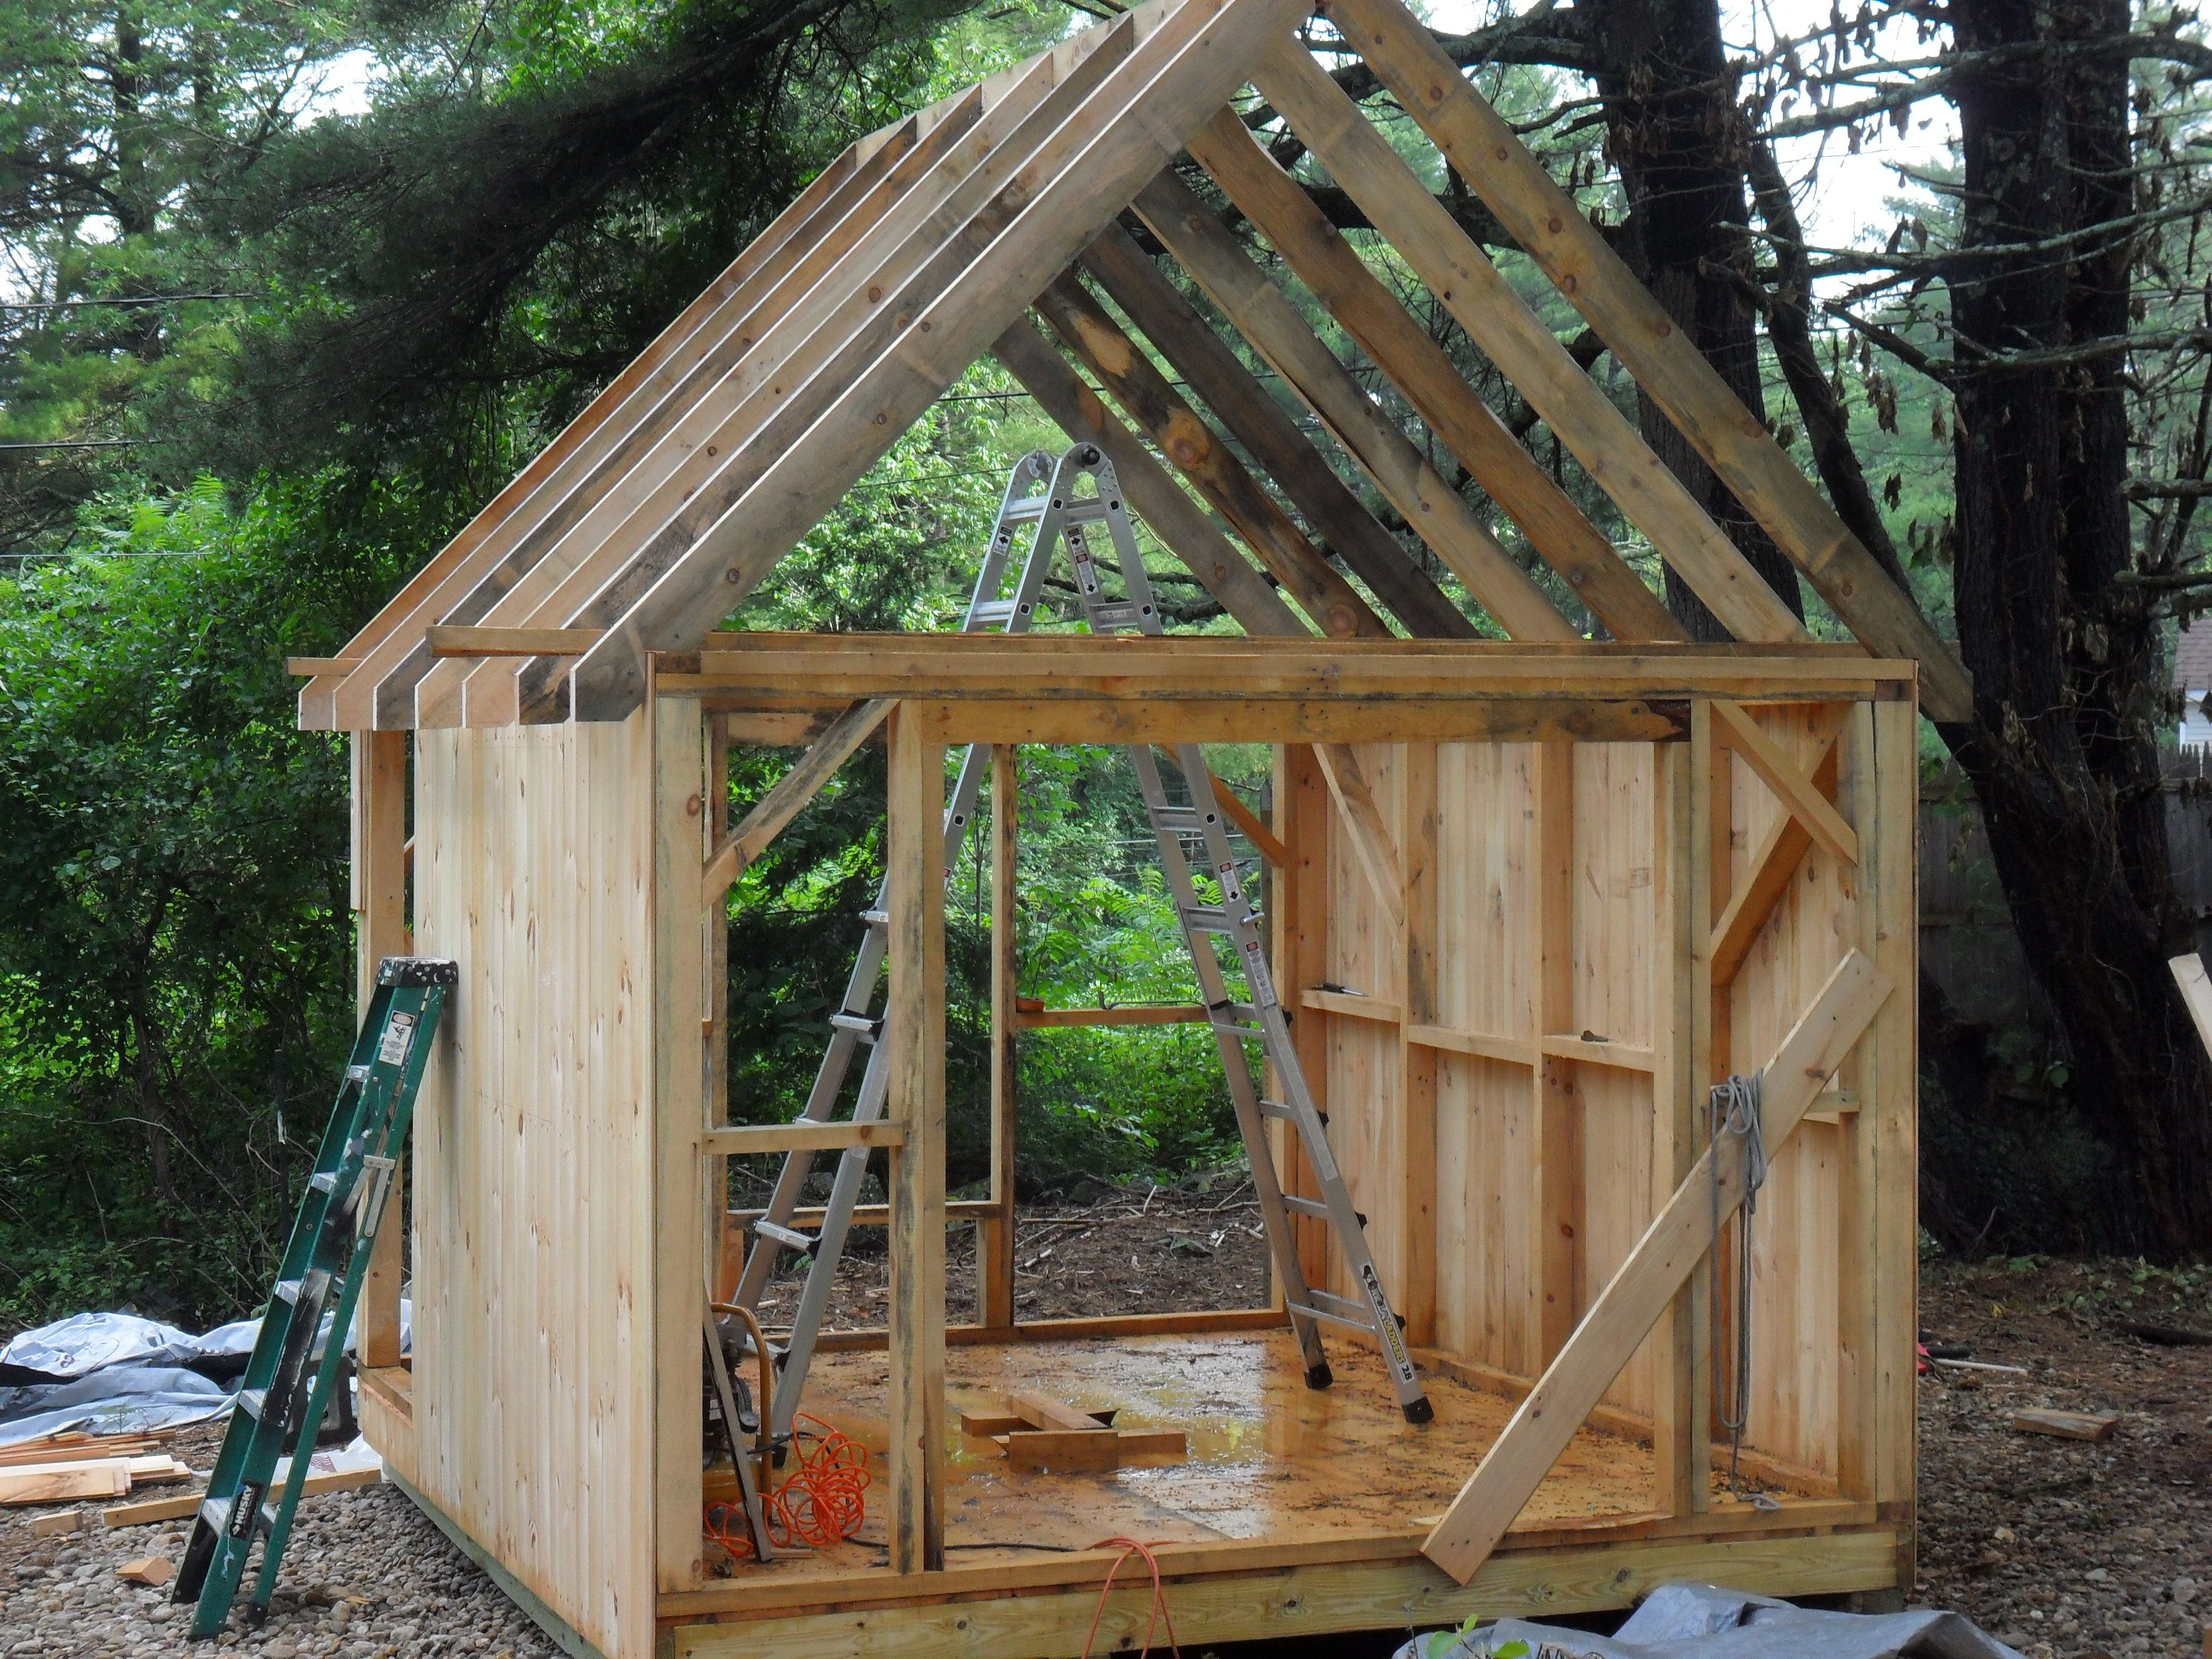 Lowes Plastic Storage Shed Sale  Building A Wooden